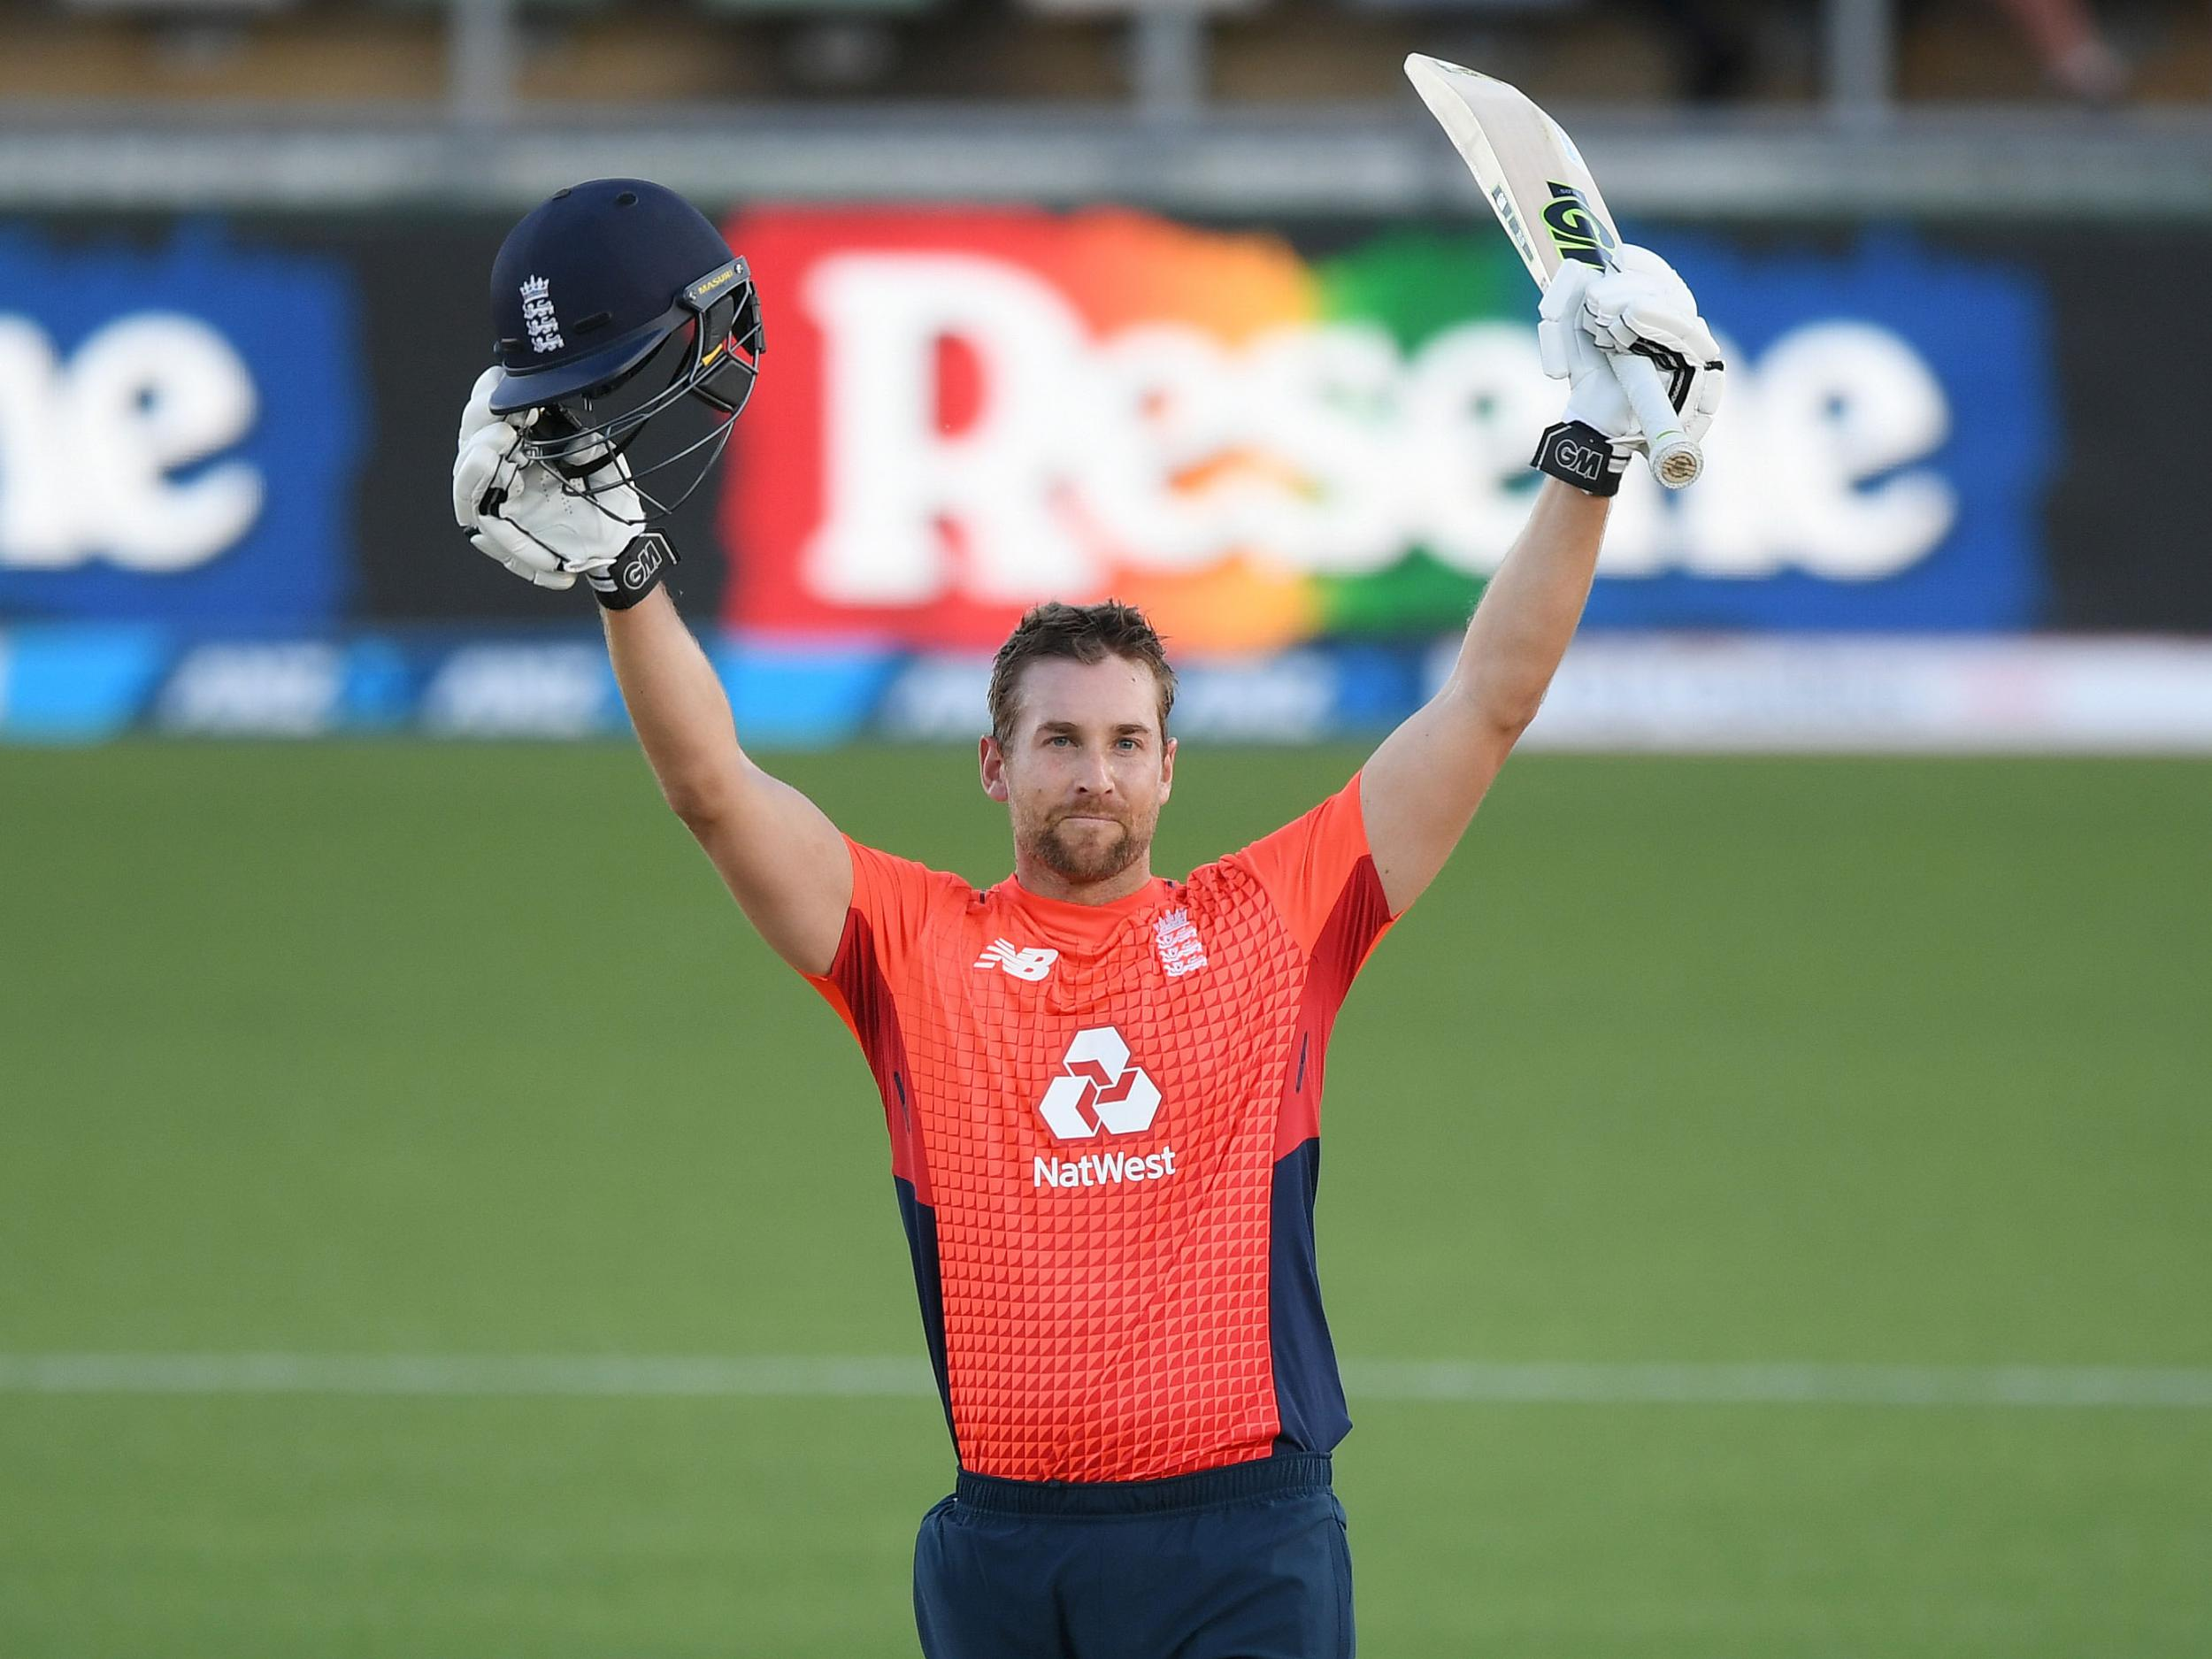 Dawid Malan ton powers England to their highest-ever T20I total in win over  New Zealand | The Independent | The Independent